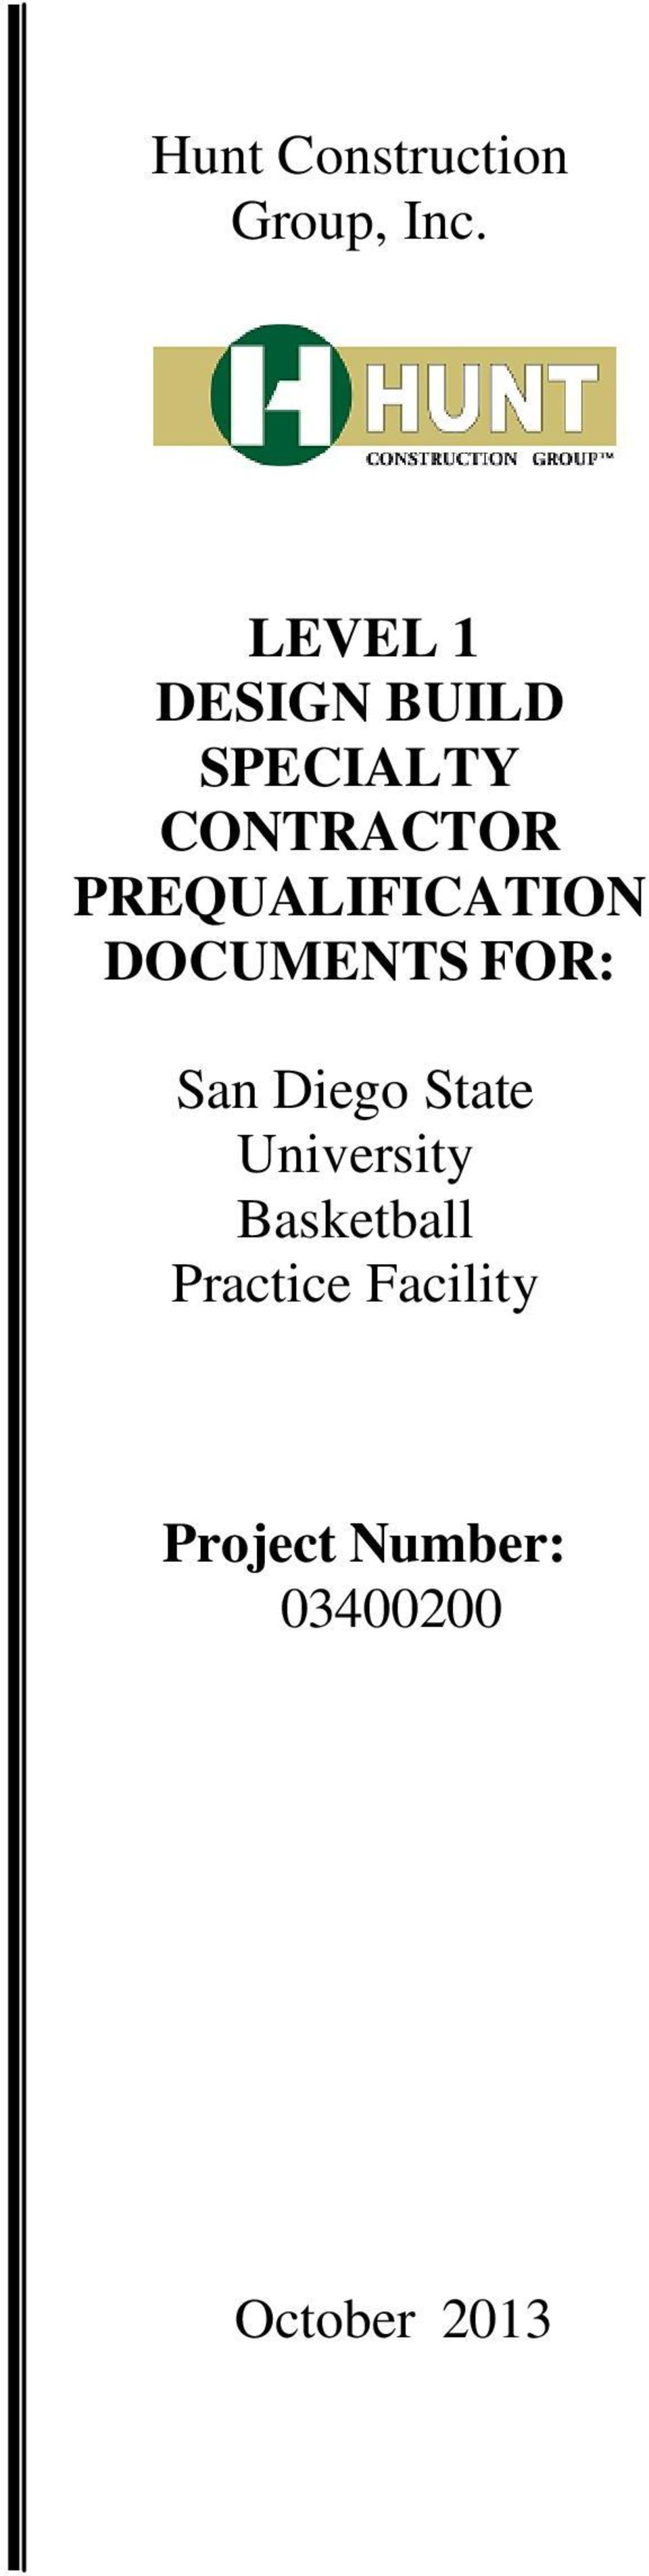 PREQUALIFICATION DOCUMENTS FOR: San Diego State